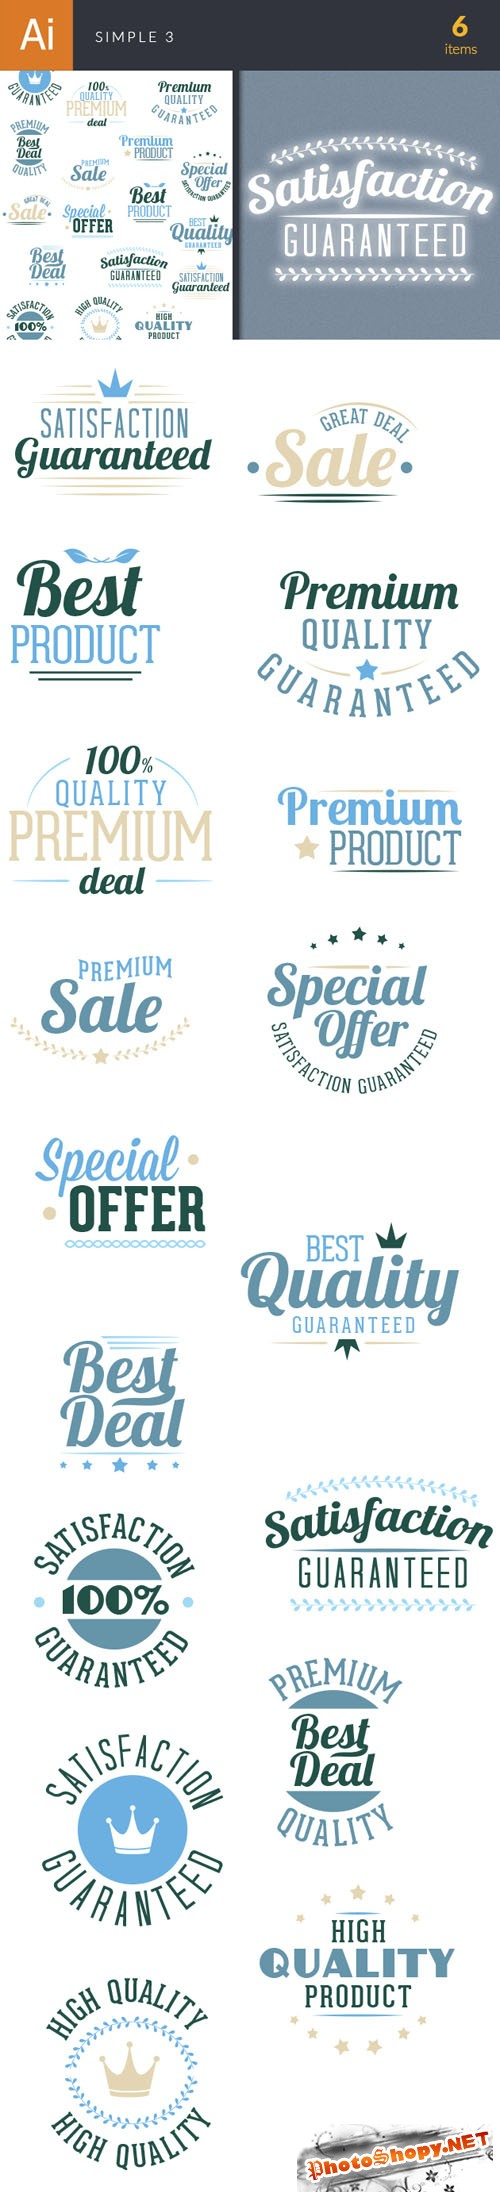 Simple 3 - Best Deal Guaranteed Vector Elements